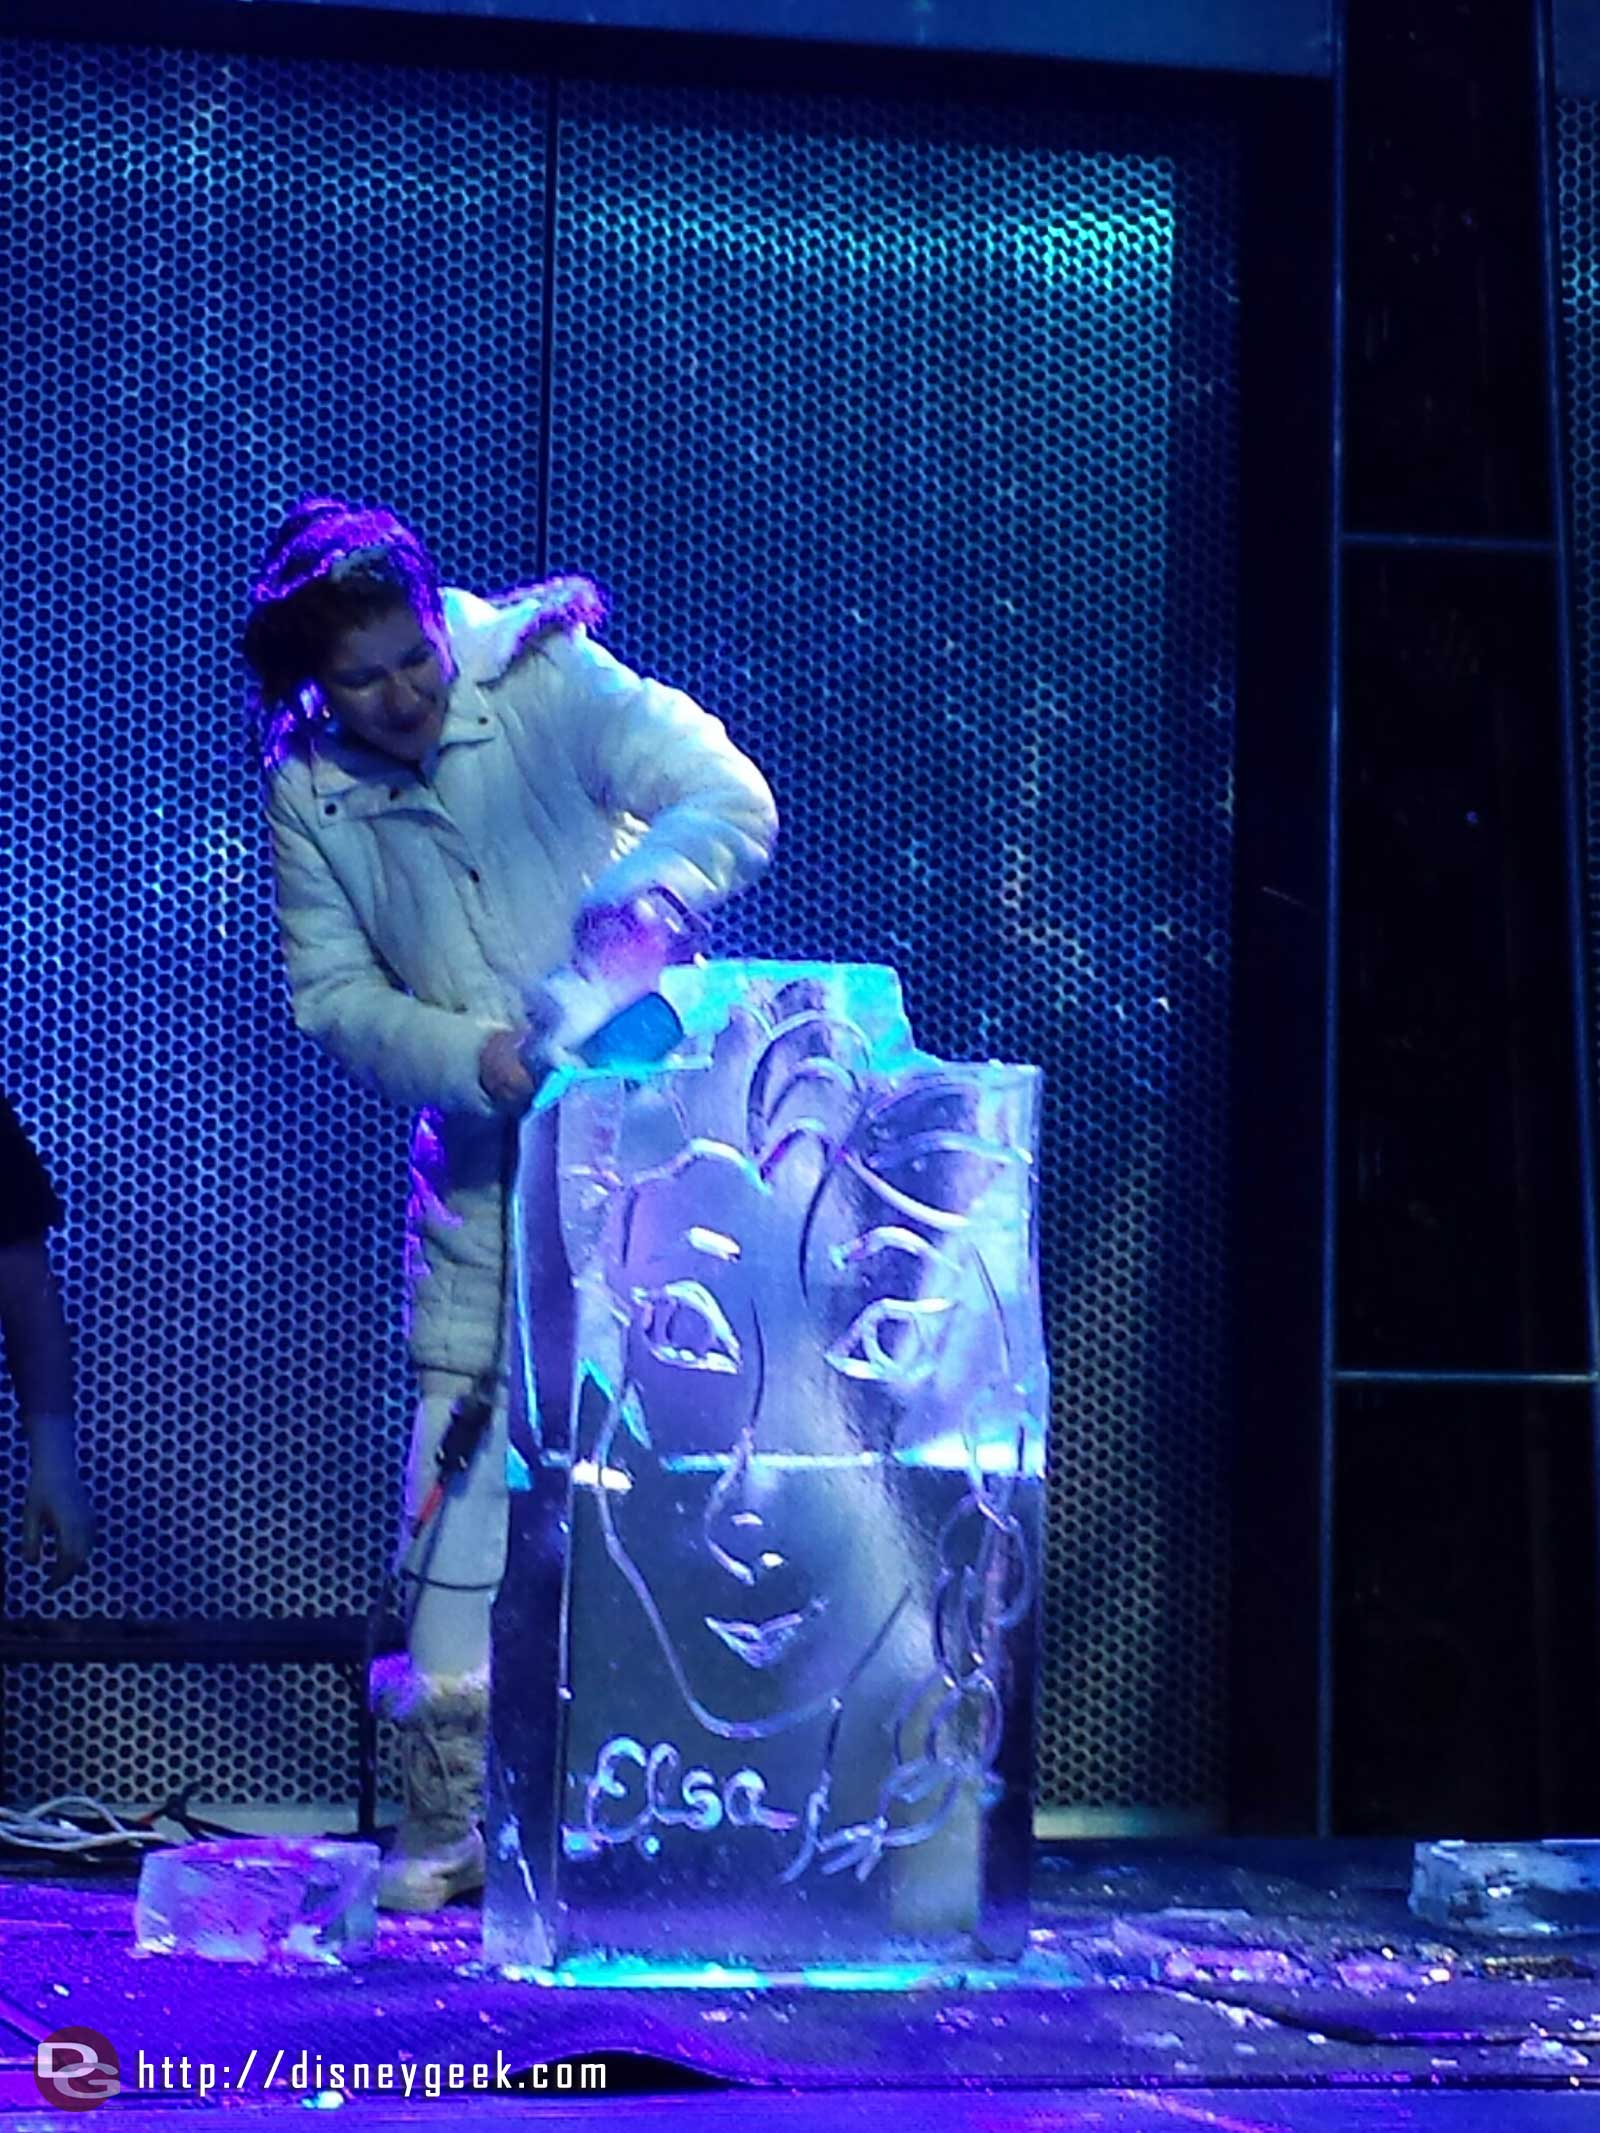 An Elsa ice sculpture being created at Freeze the Night #FrozenFun